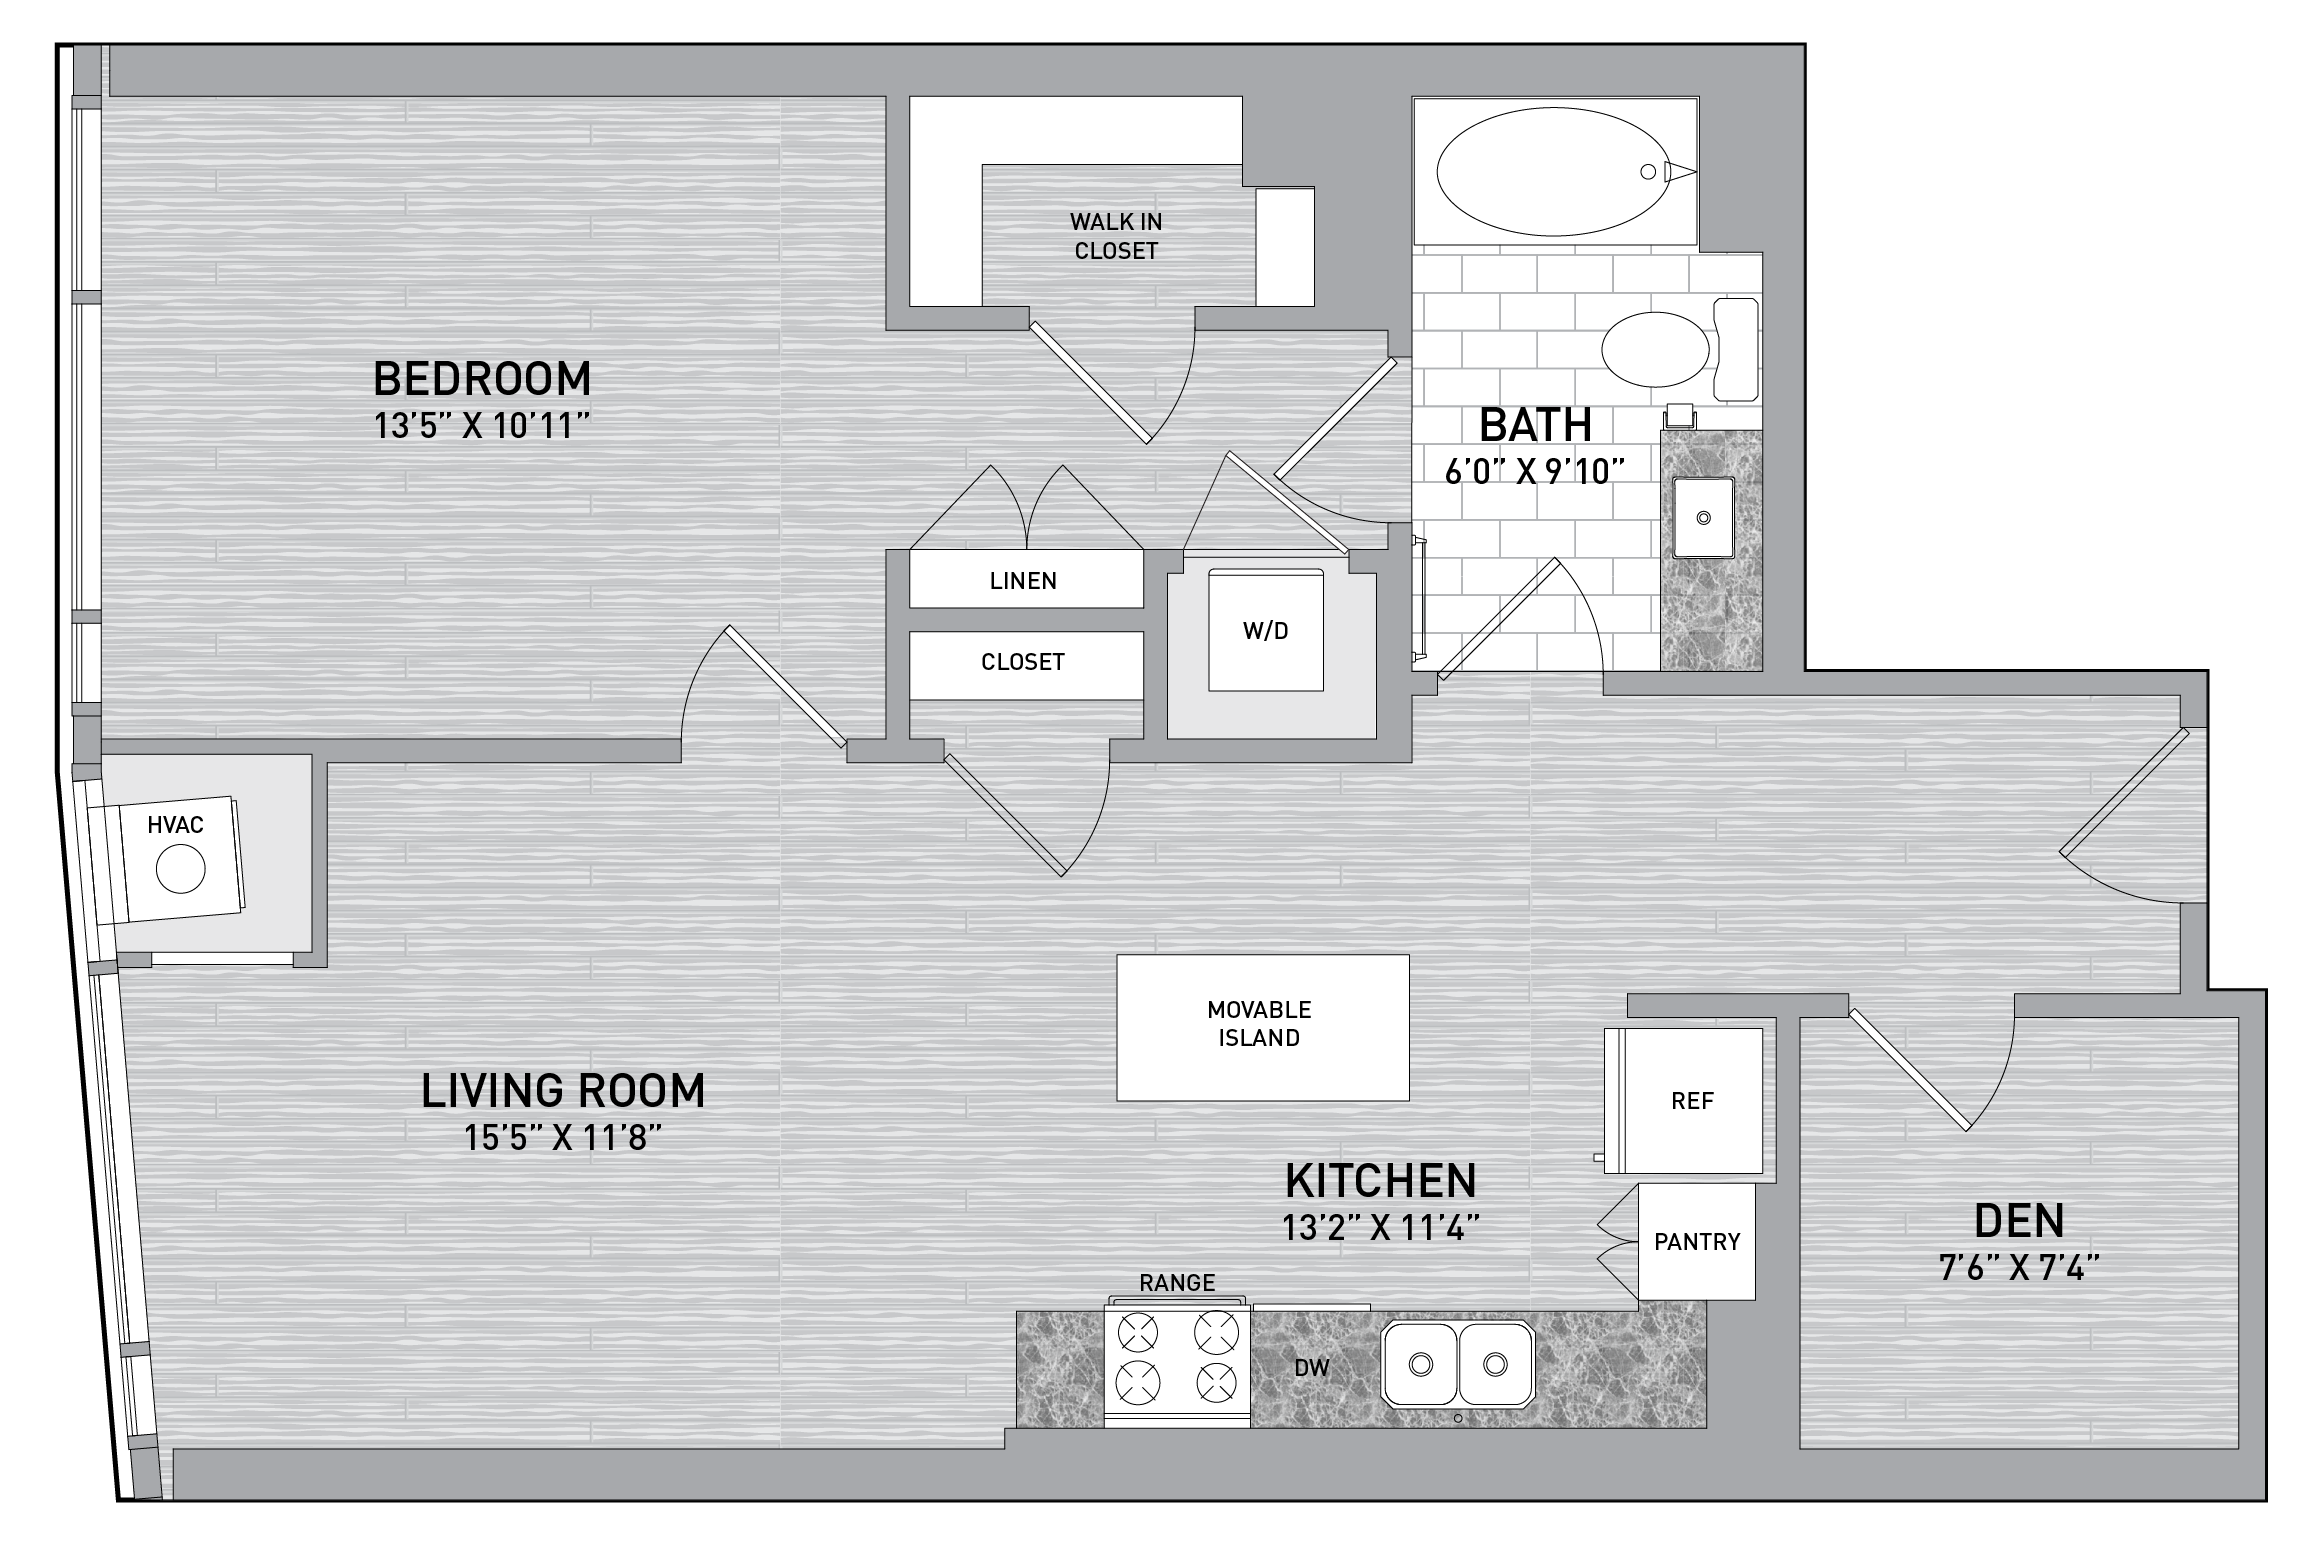 floorplan image of unit id 0228